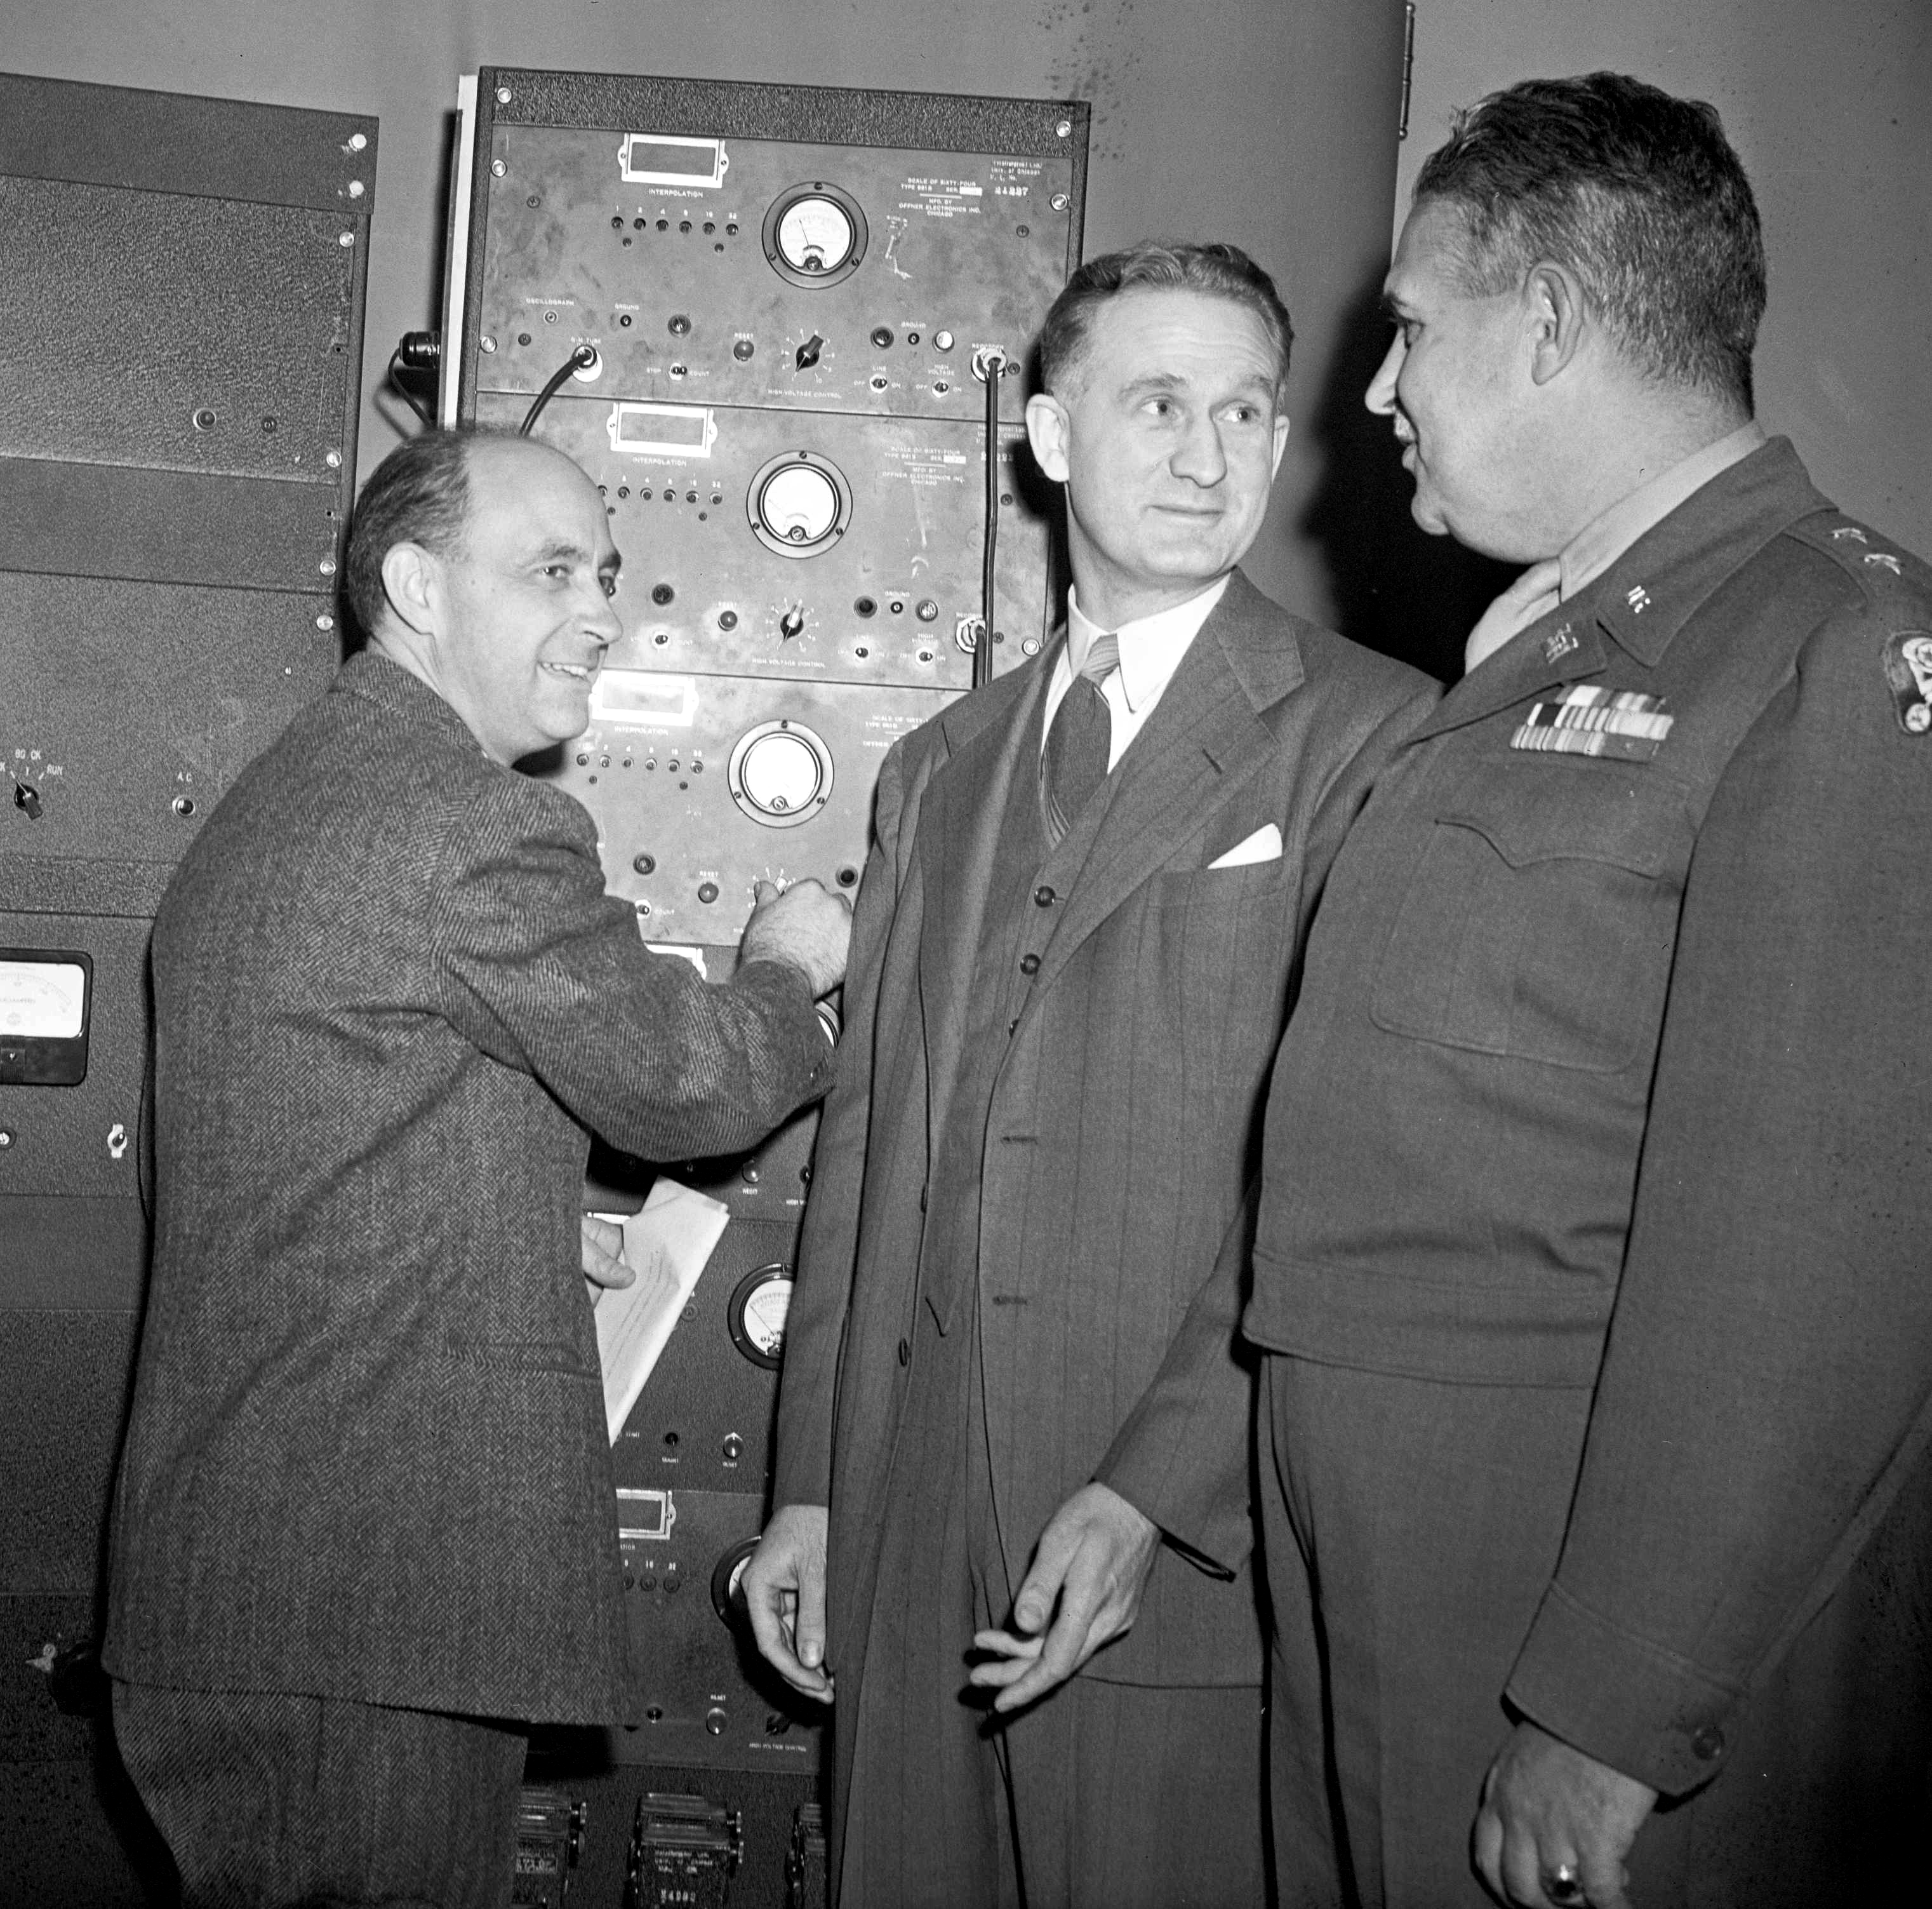 Dr. Enrico Fermi, left, Dr. Walter H. Zinn, center, and Maj. Gen. Leslie R. Groves, head of the Manhattan Engineering Project, look over a nuclear instrument during a reunion in Chicago, Ill., Dec. 2, 1946, the fourth anniversary of the first demonstration that atomic energy could be released and controlled. (AP Photo/Charles Knoblock)